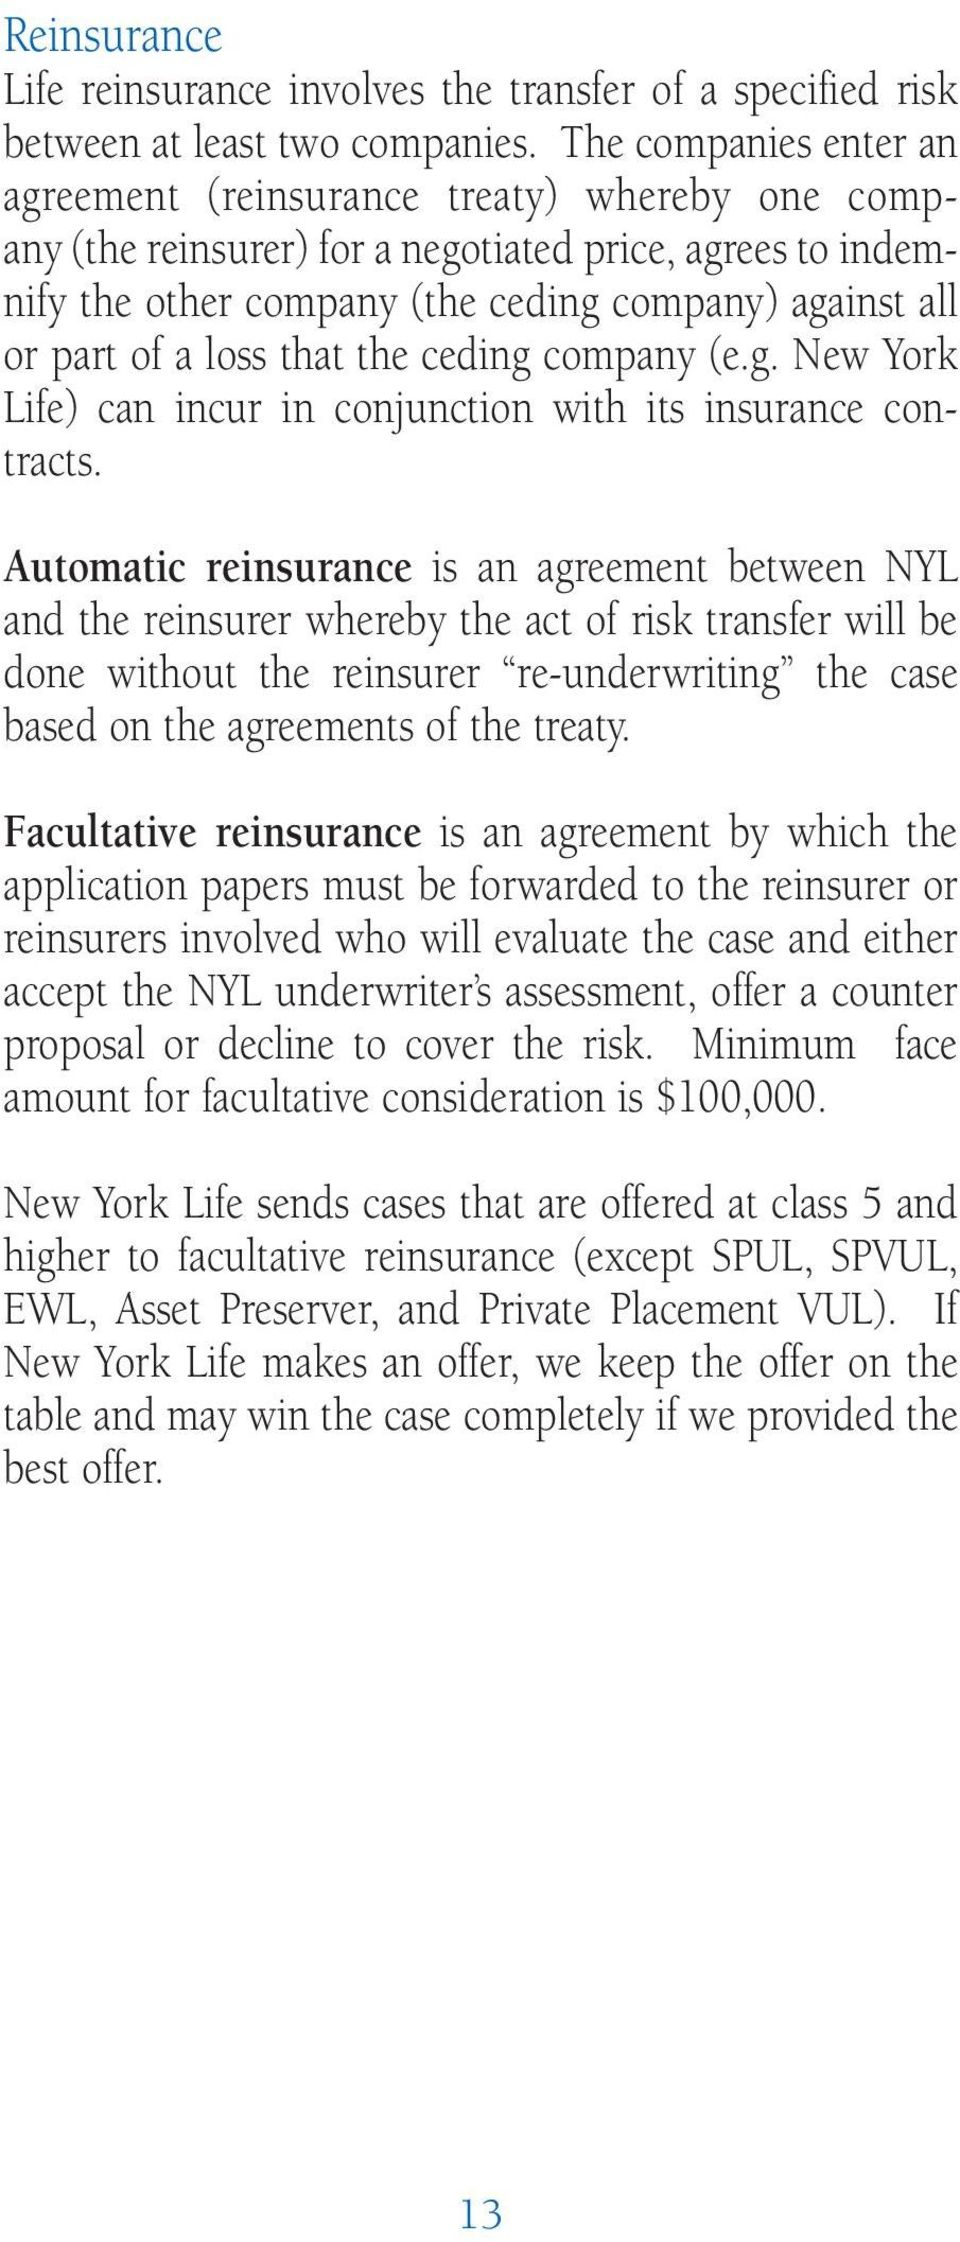 loss that the ceding company (e.g. New York Life) can incur in conjunction with its insurance contracts.